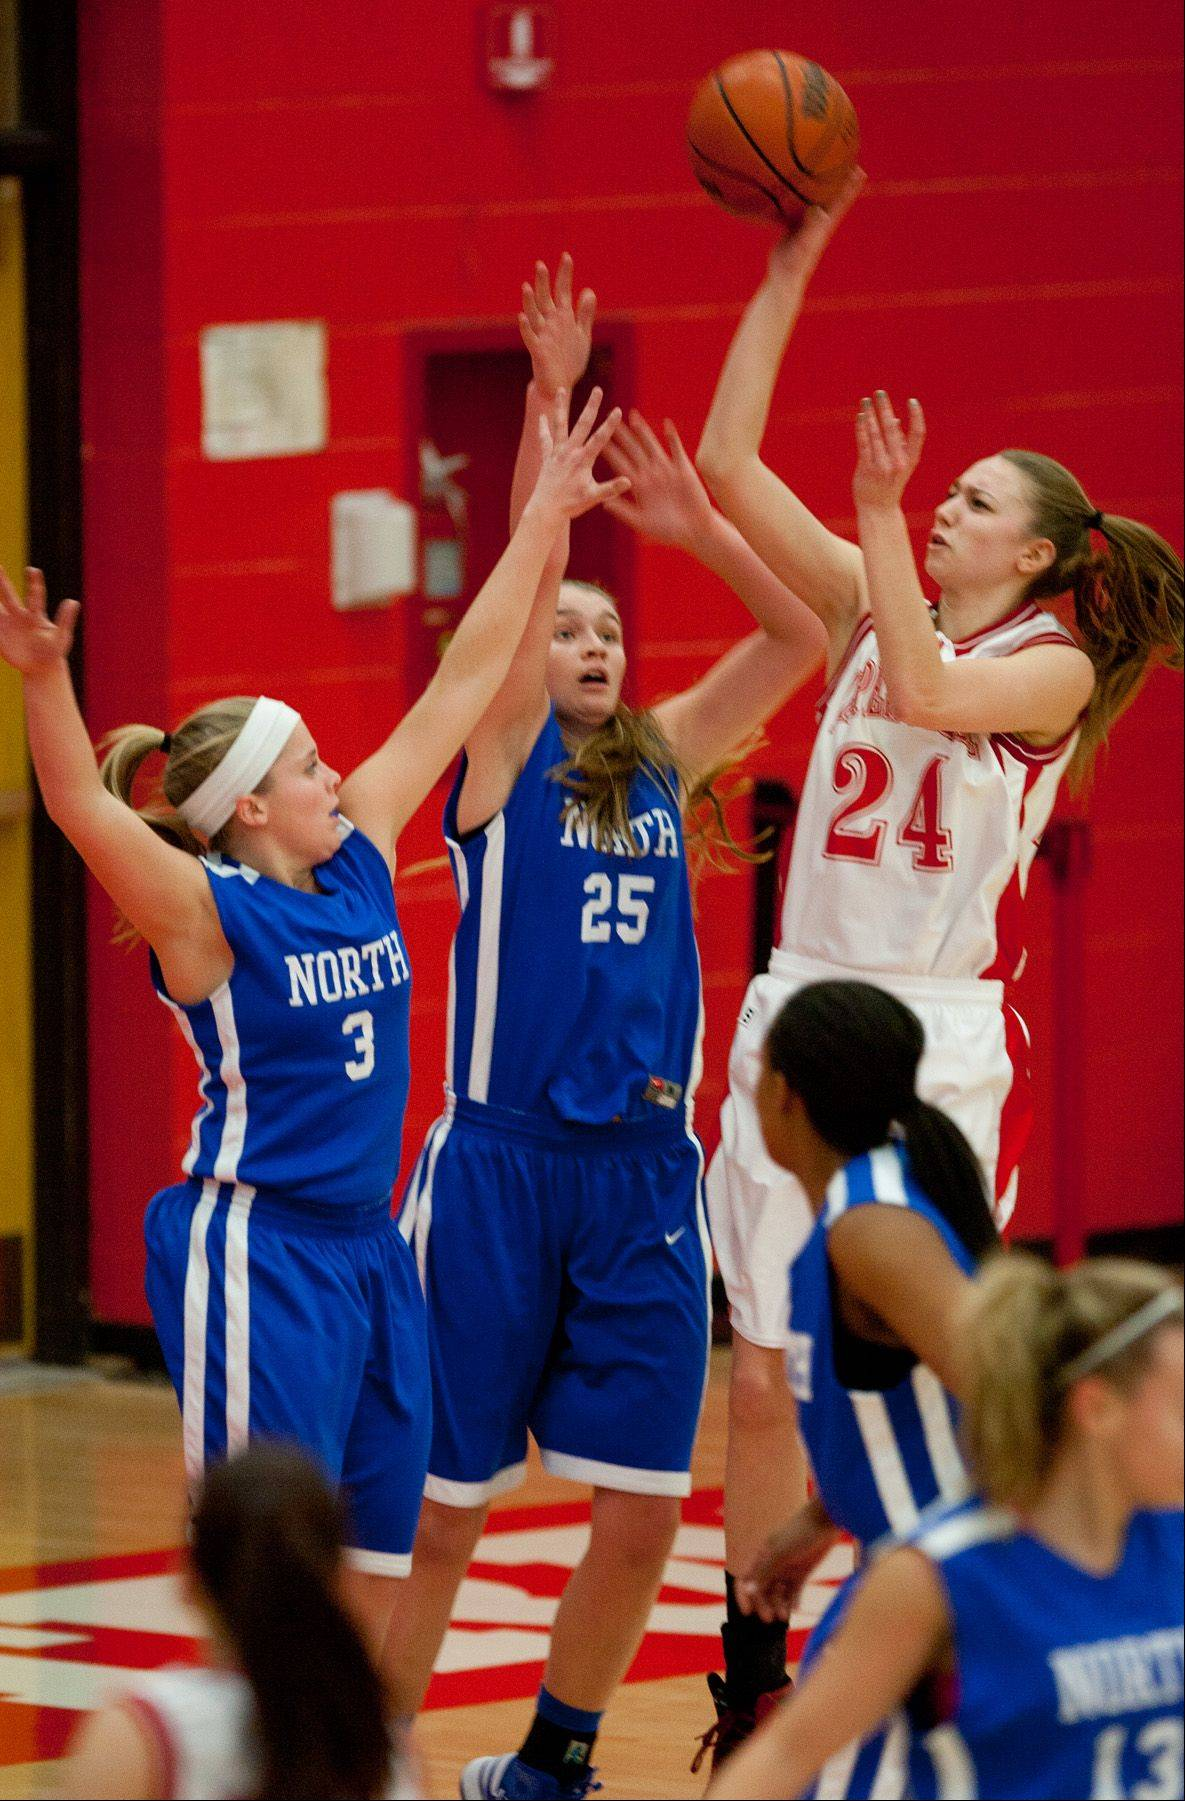 Naperville Central's Jamie Cuny (24) eyes the rim against Wheaton North on Saturday in Naperville.